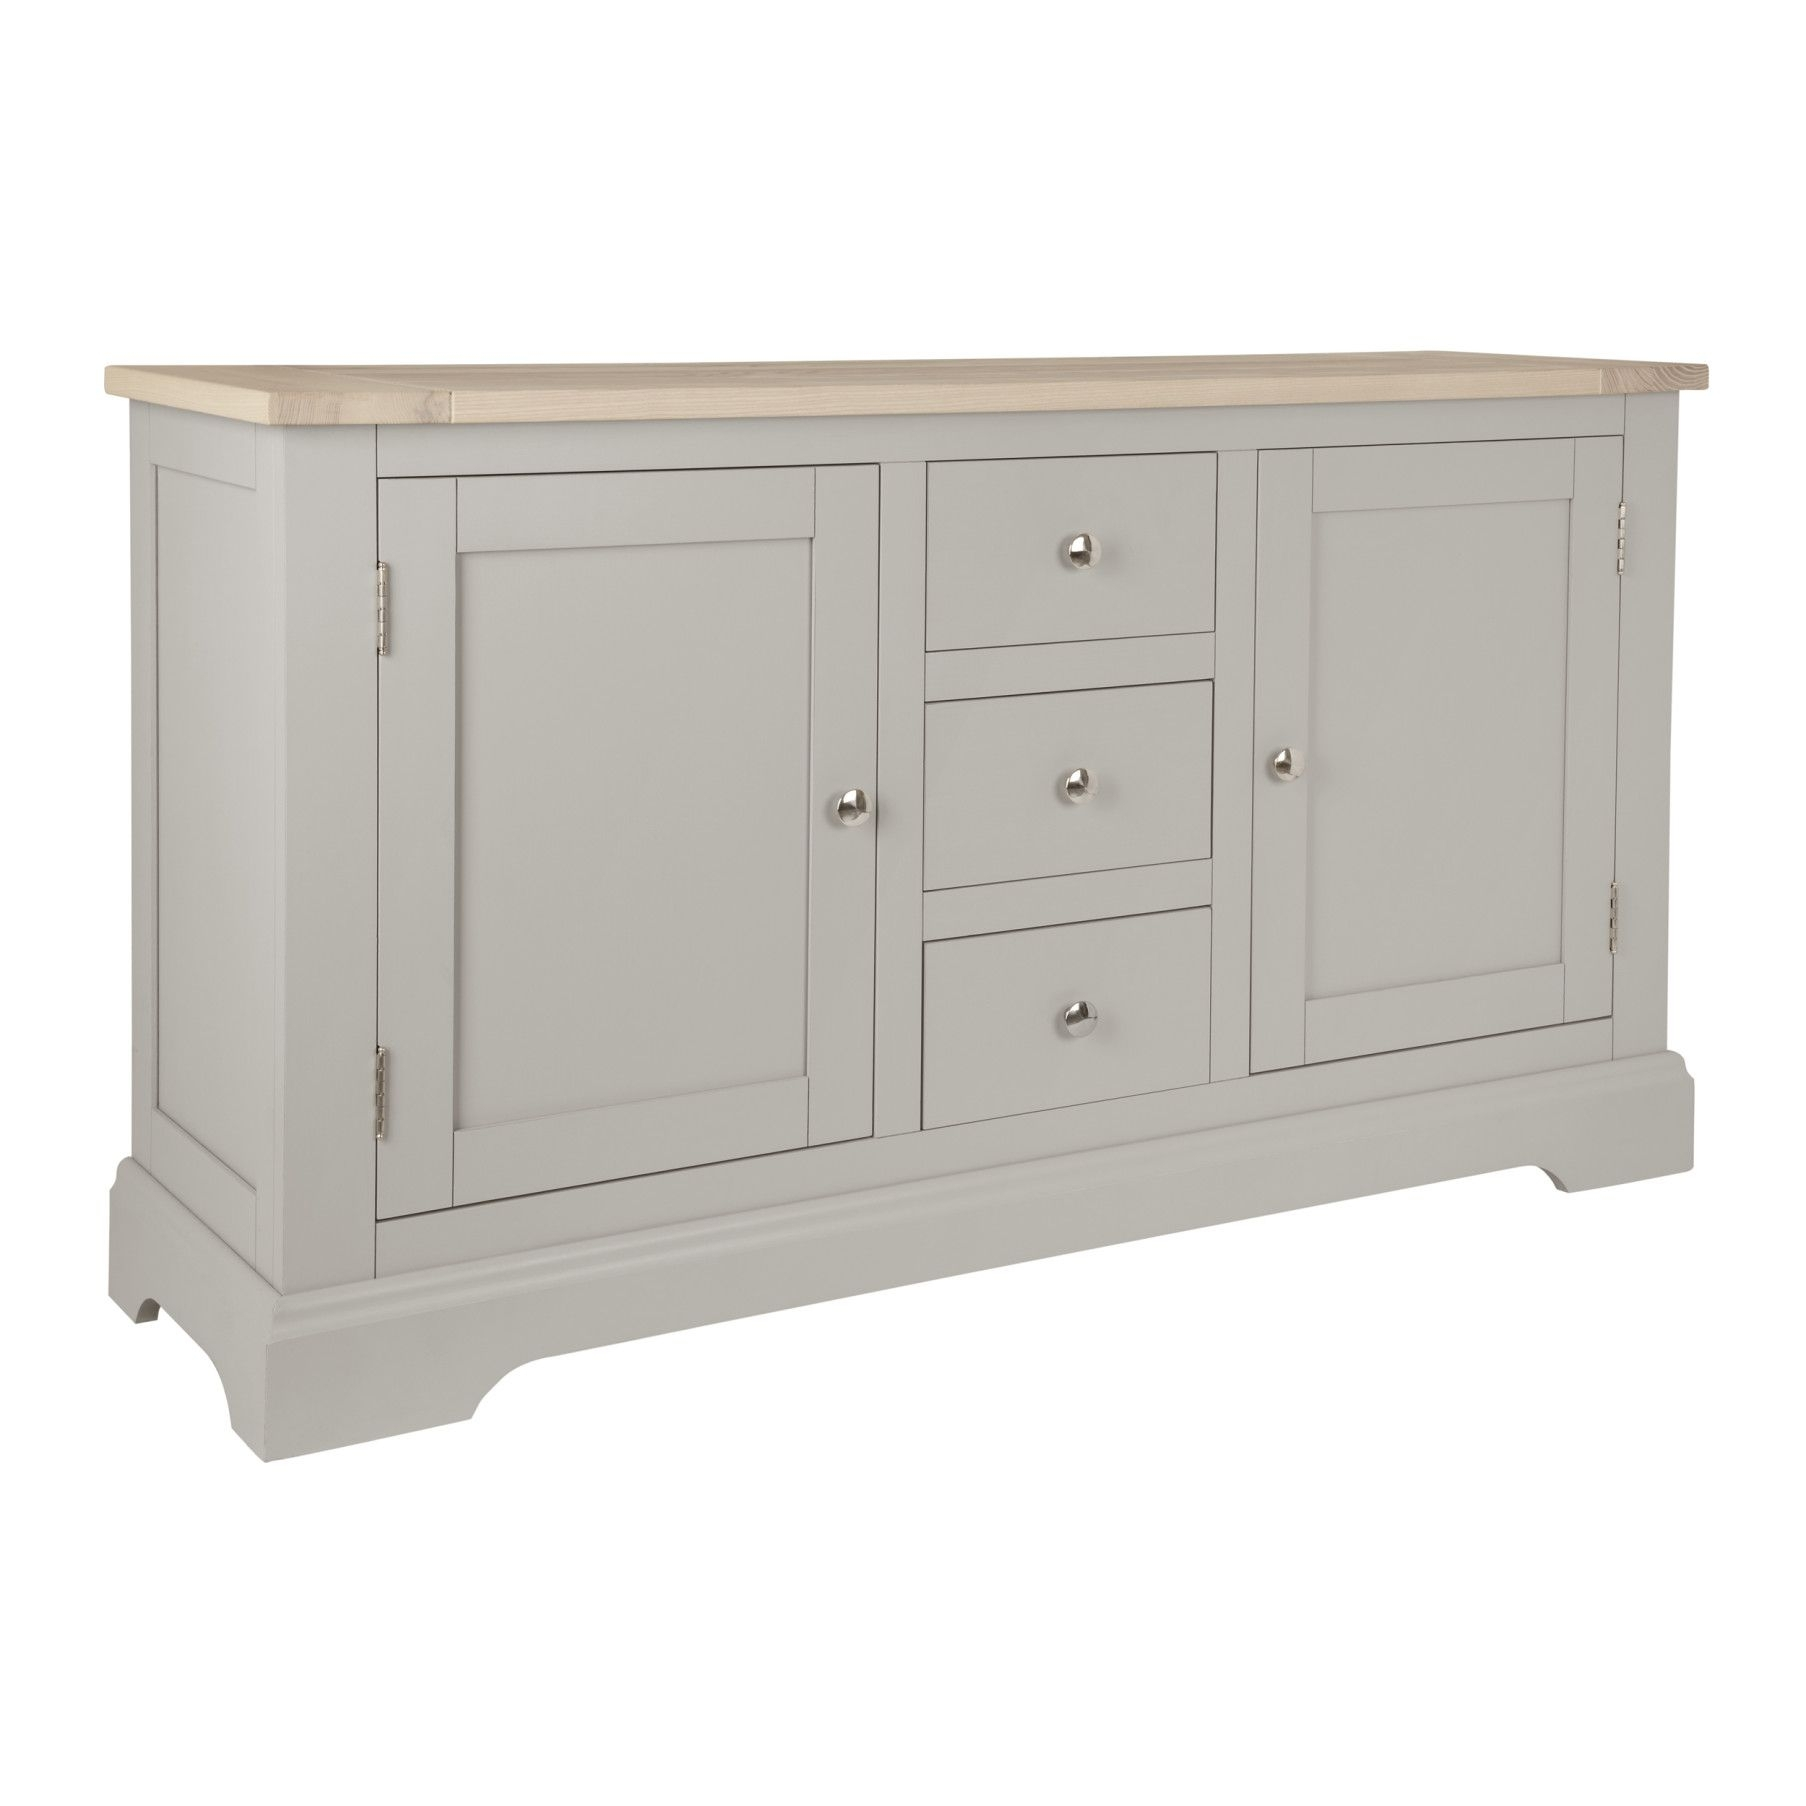 Inspiration about Made To Order Furniture – Dorset Pale French Grey 2 Door 3 Drawer Inside Most Current Oil Pale Finish 3 Door Sideboards (#1 of 20)